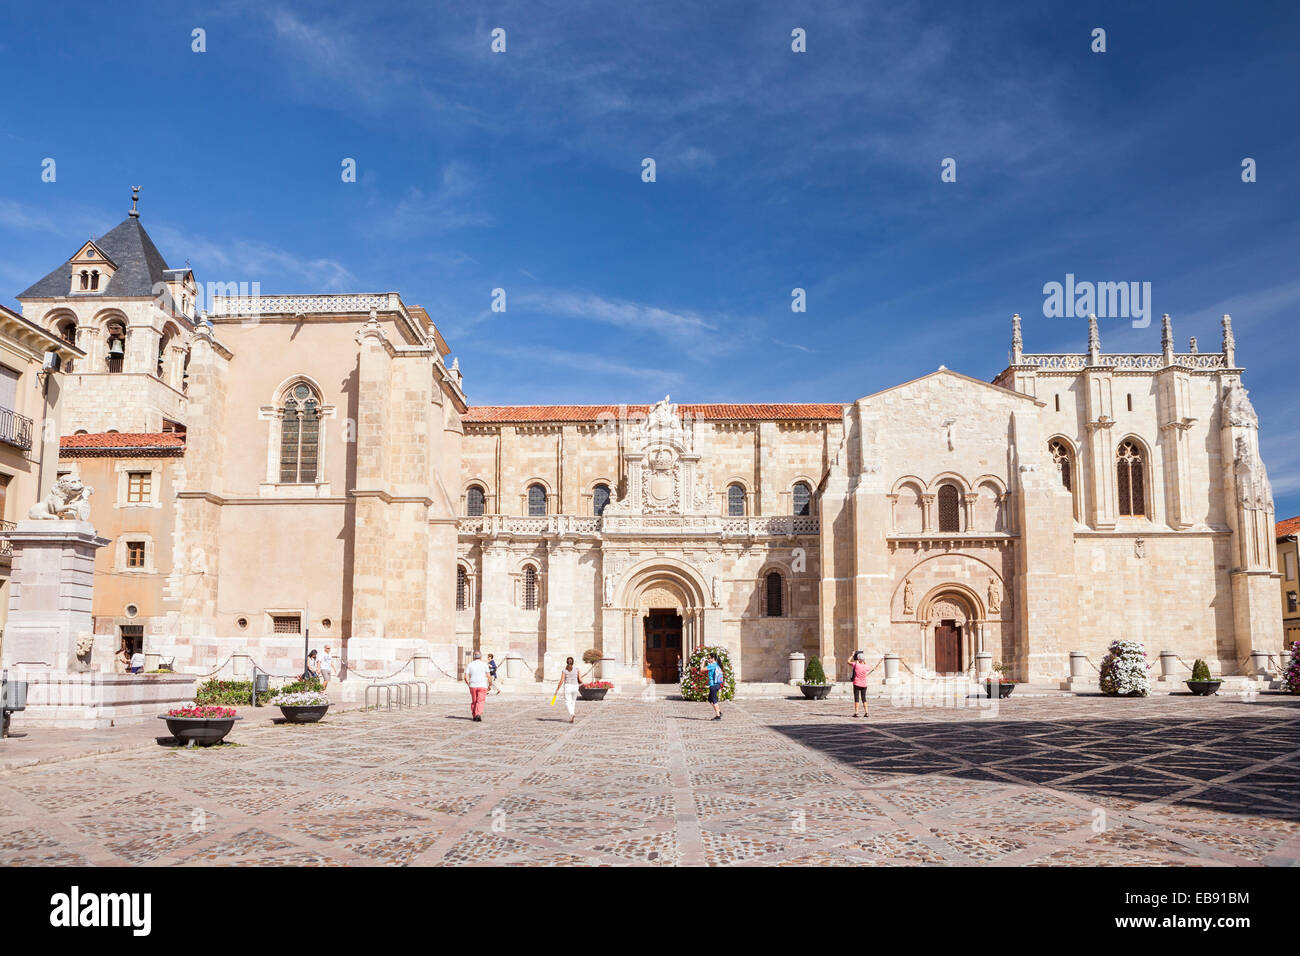 Real Colegiata de San Isidoro in Leon, Way of St. James, Leon, Spain Stock Photo